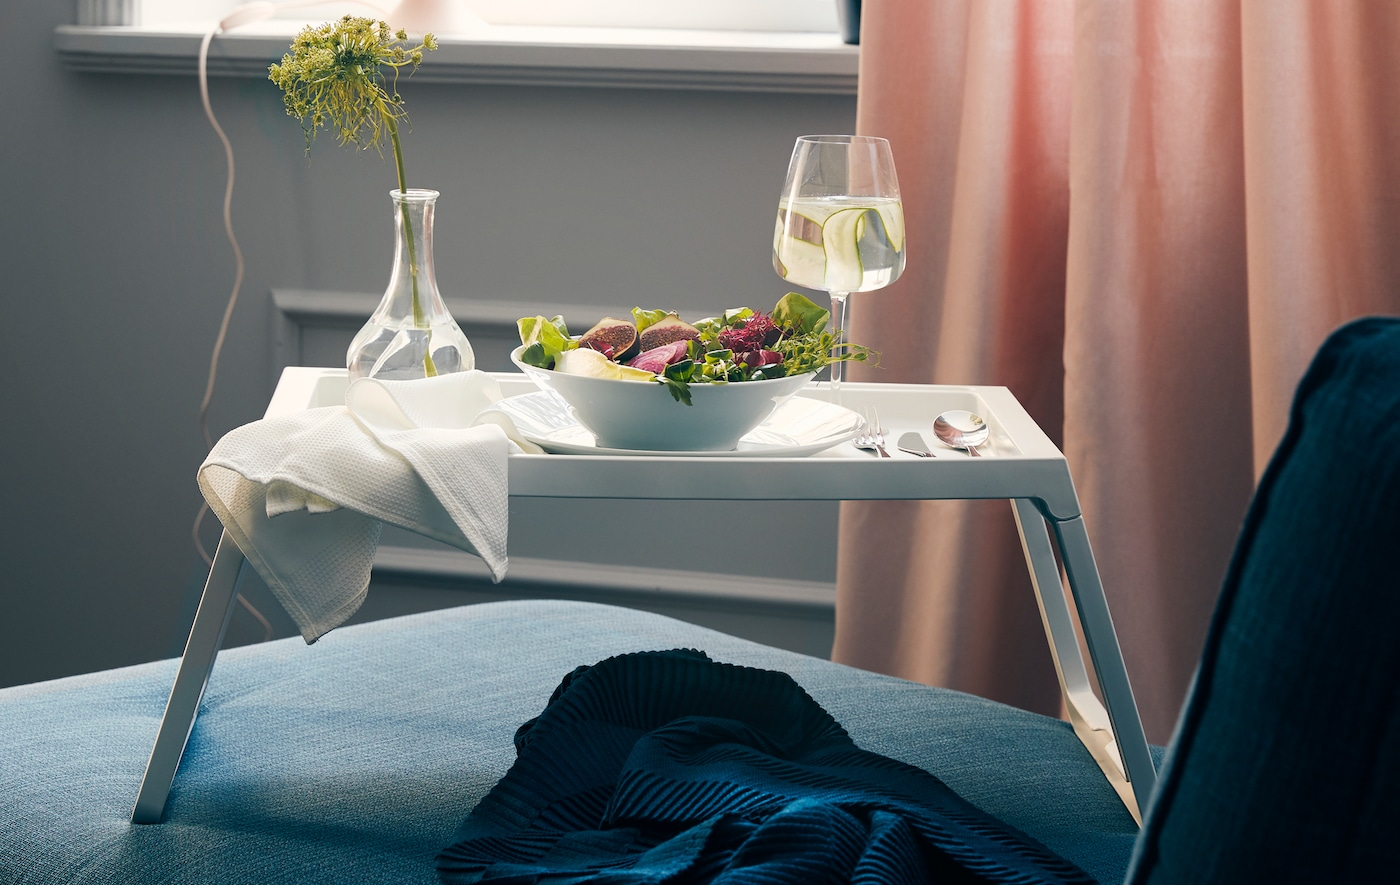 A bed tray sitting on a chaise with a salad, eating utensils, a glass of wine, and a small vase with a flower.